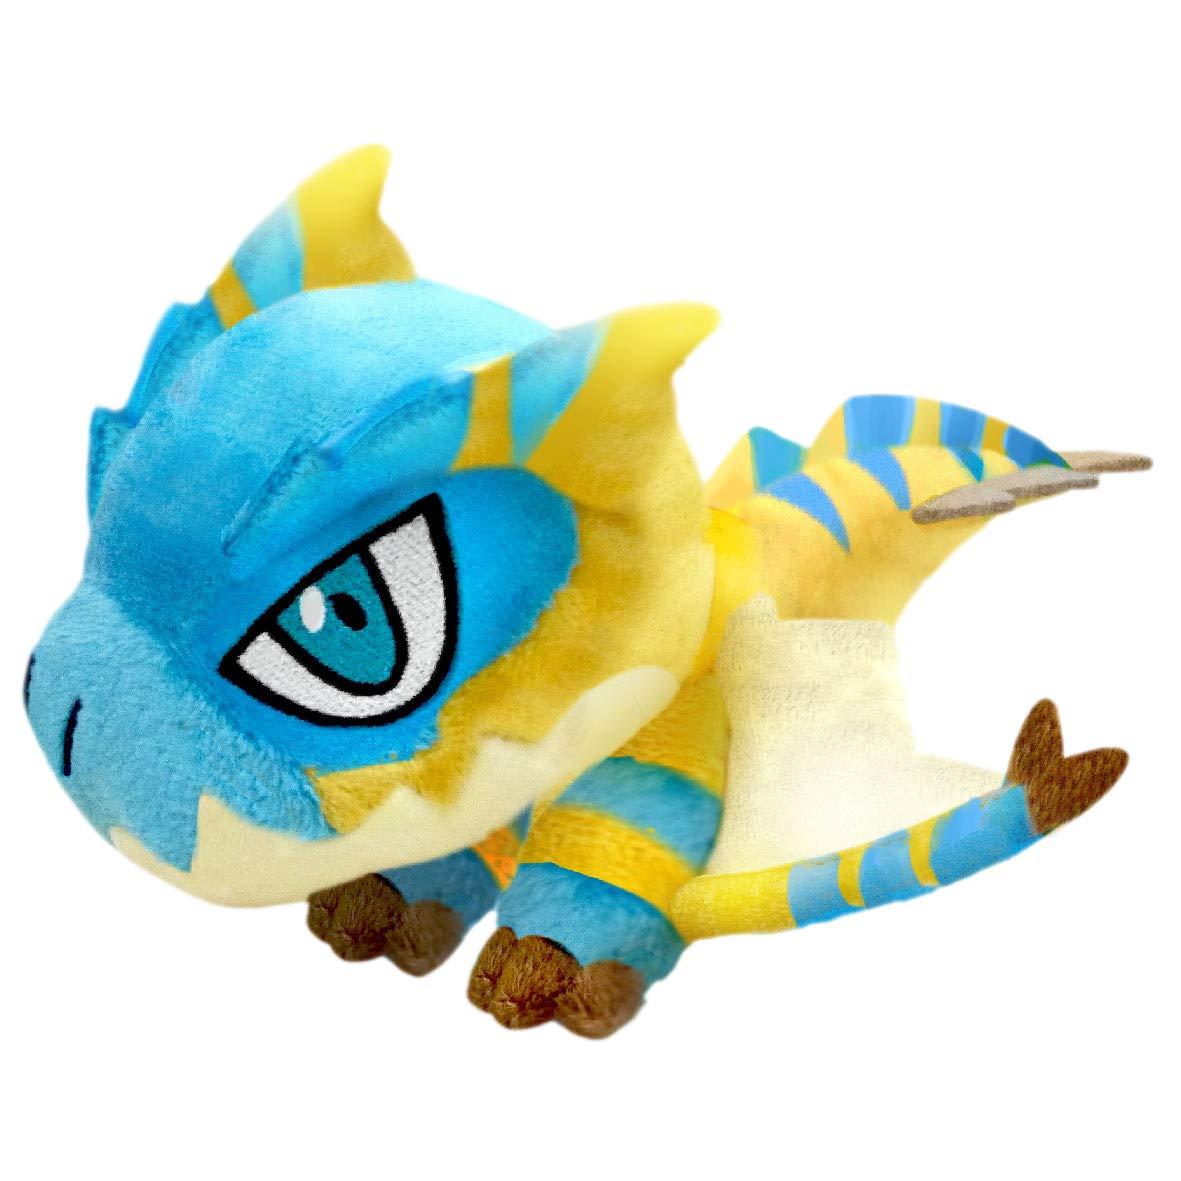 Capcom Monster Hunter: Tigrex Monster Chibi Plush Toy by Capcom